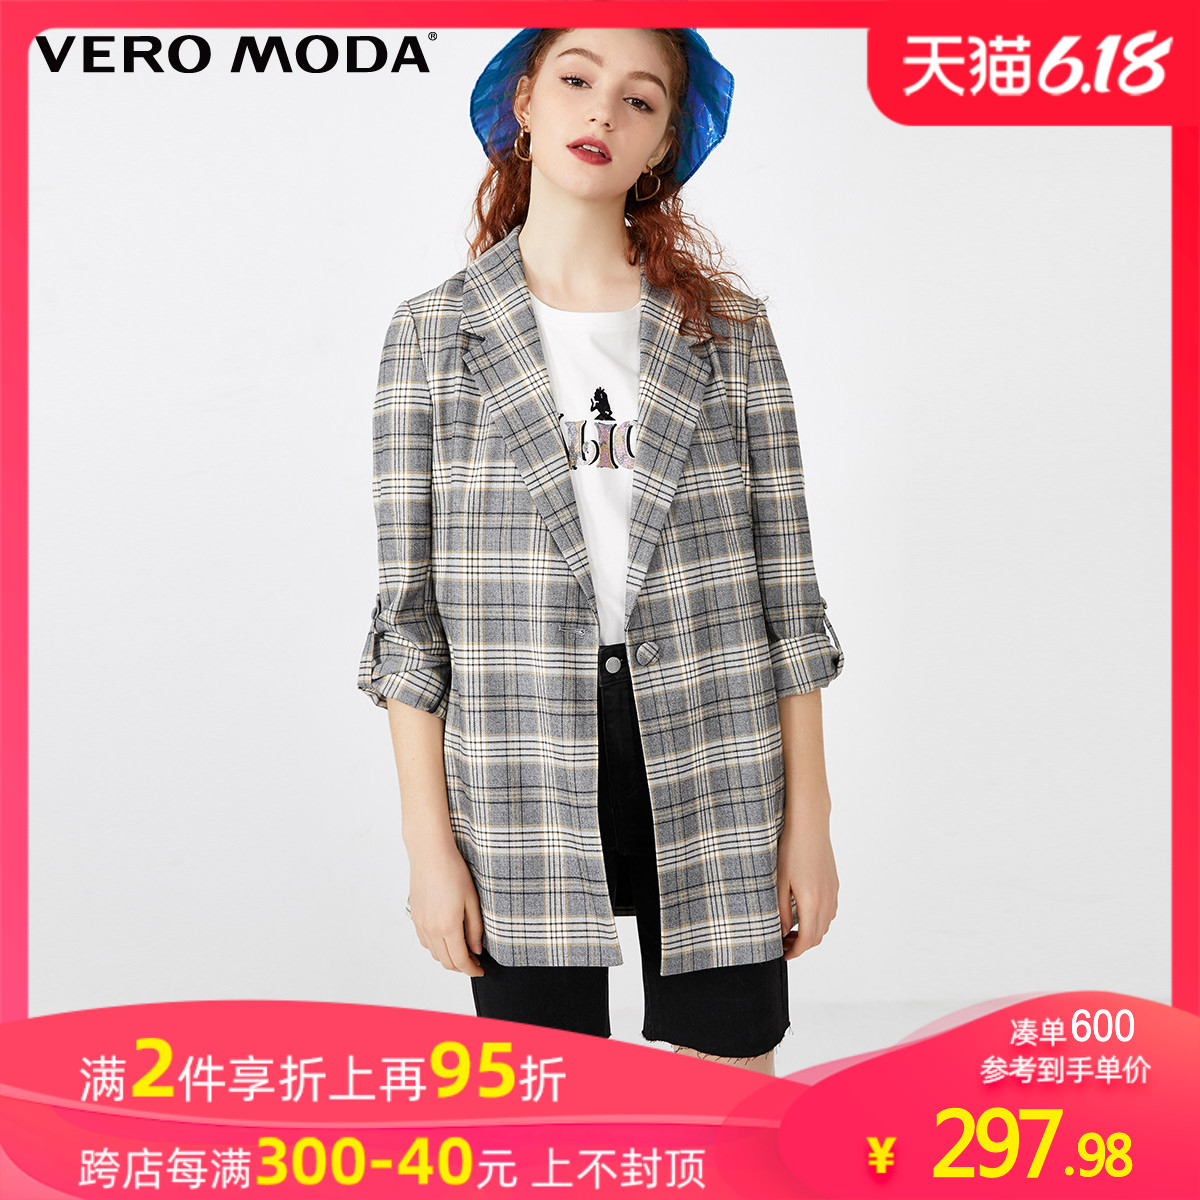 Vero moda2020 spring new style British style pattern suit coat for women 320108550